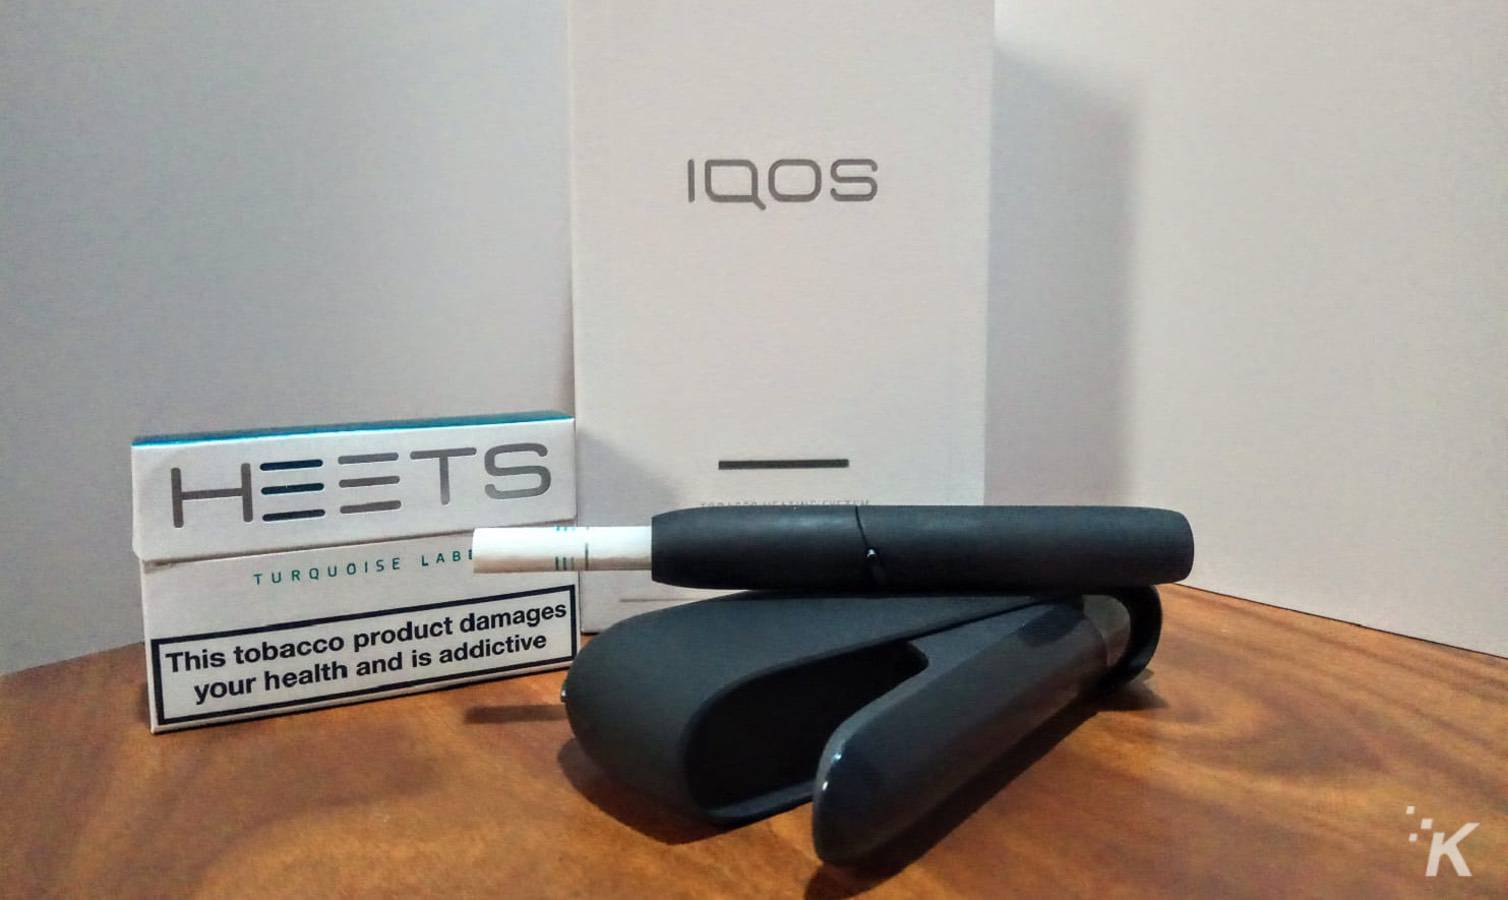 IQOS is the next evolution in moving humanity past cigarettes